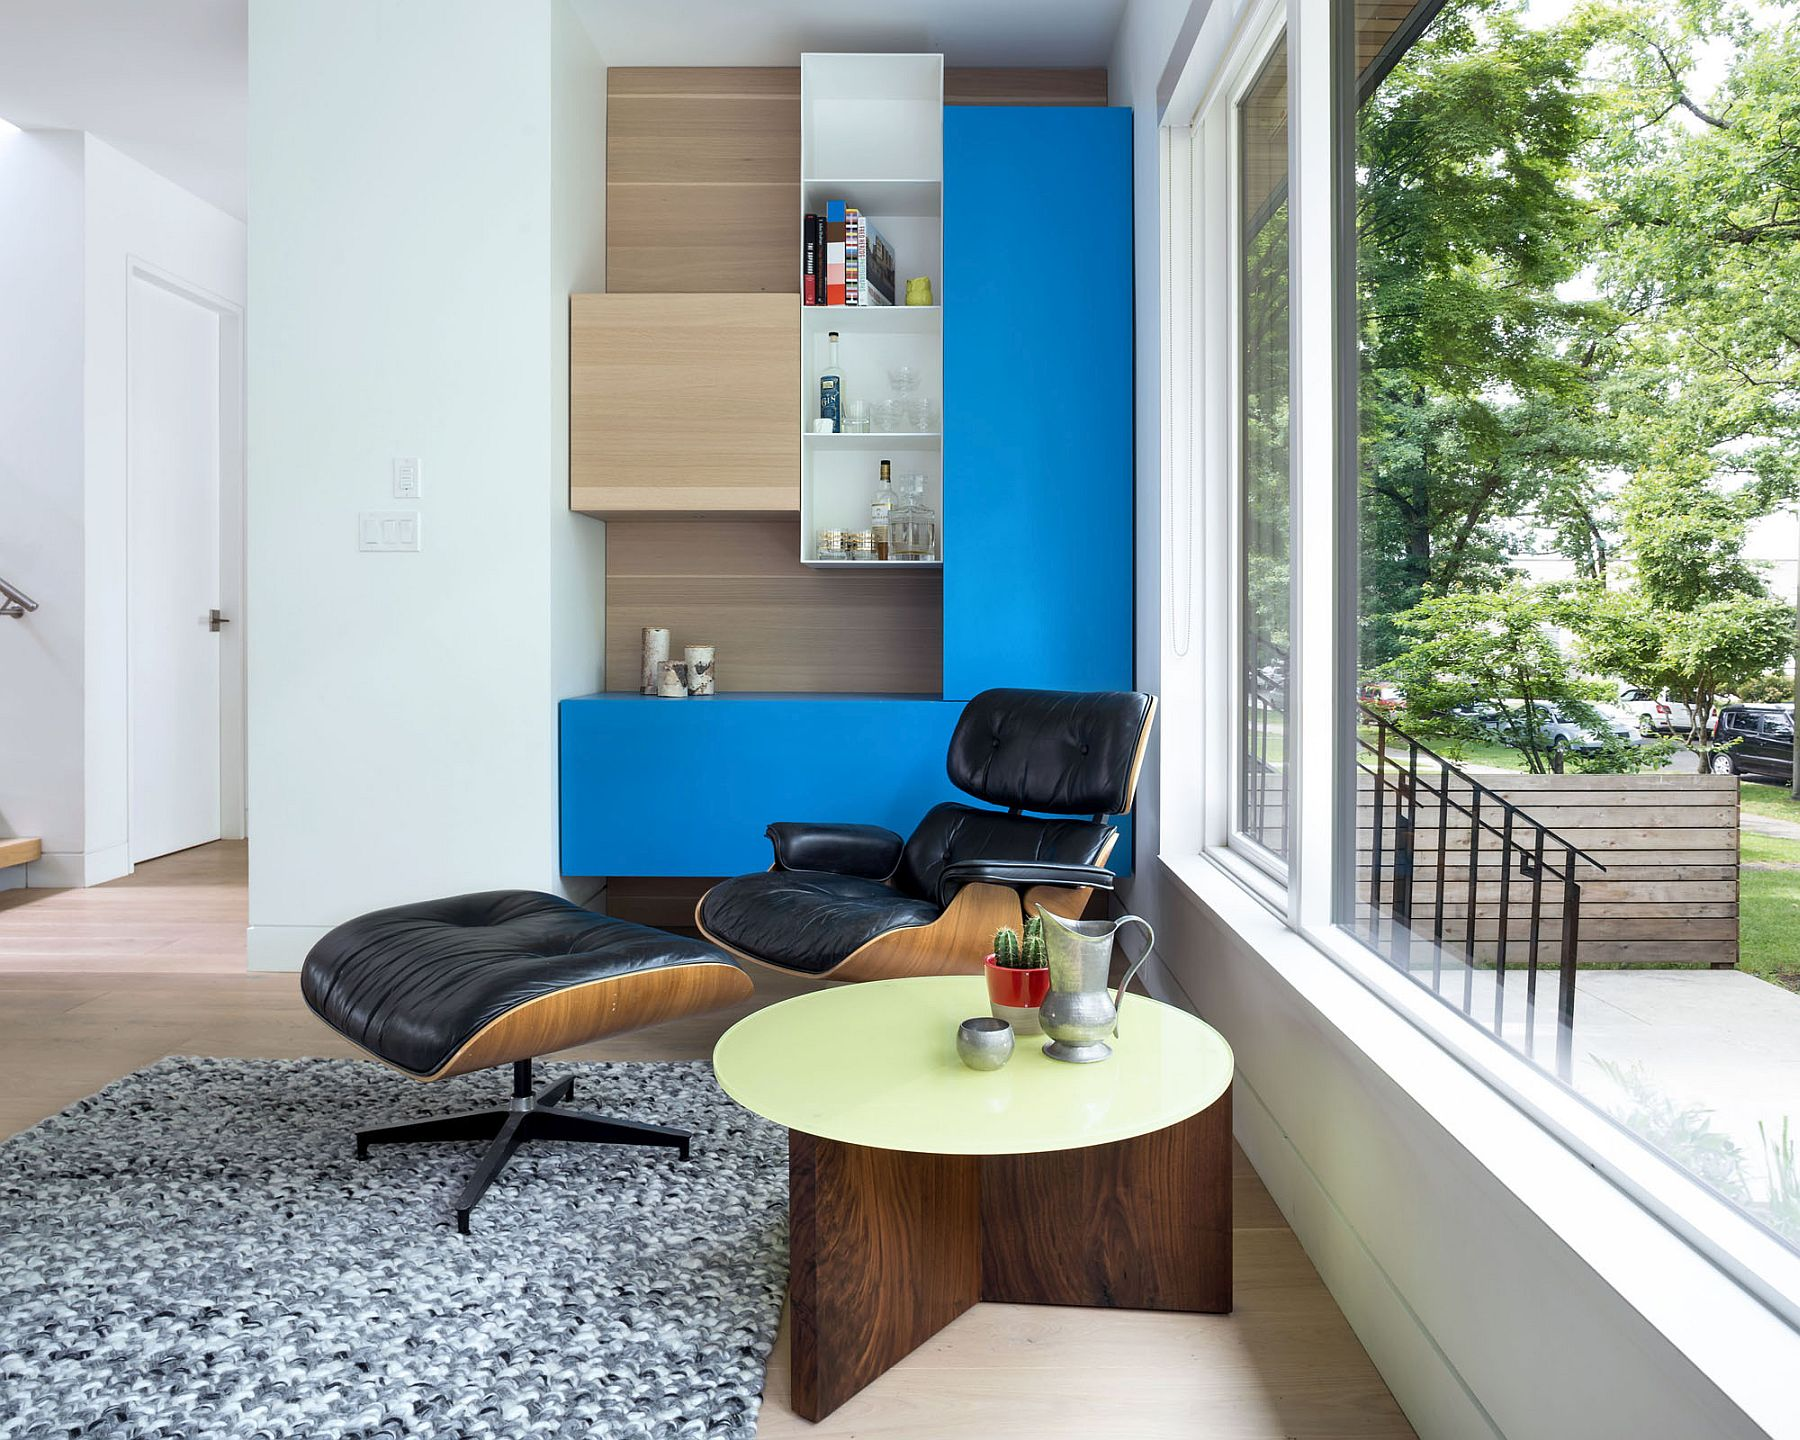 View In Gallery Living Area With The Classic Eames Lounger And Colorful  Modular Shelving